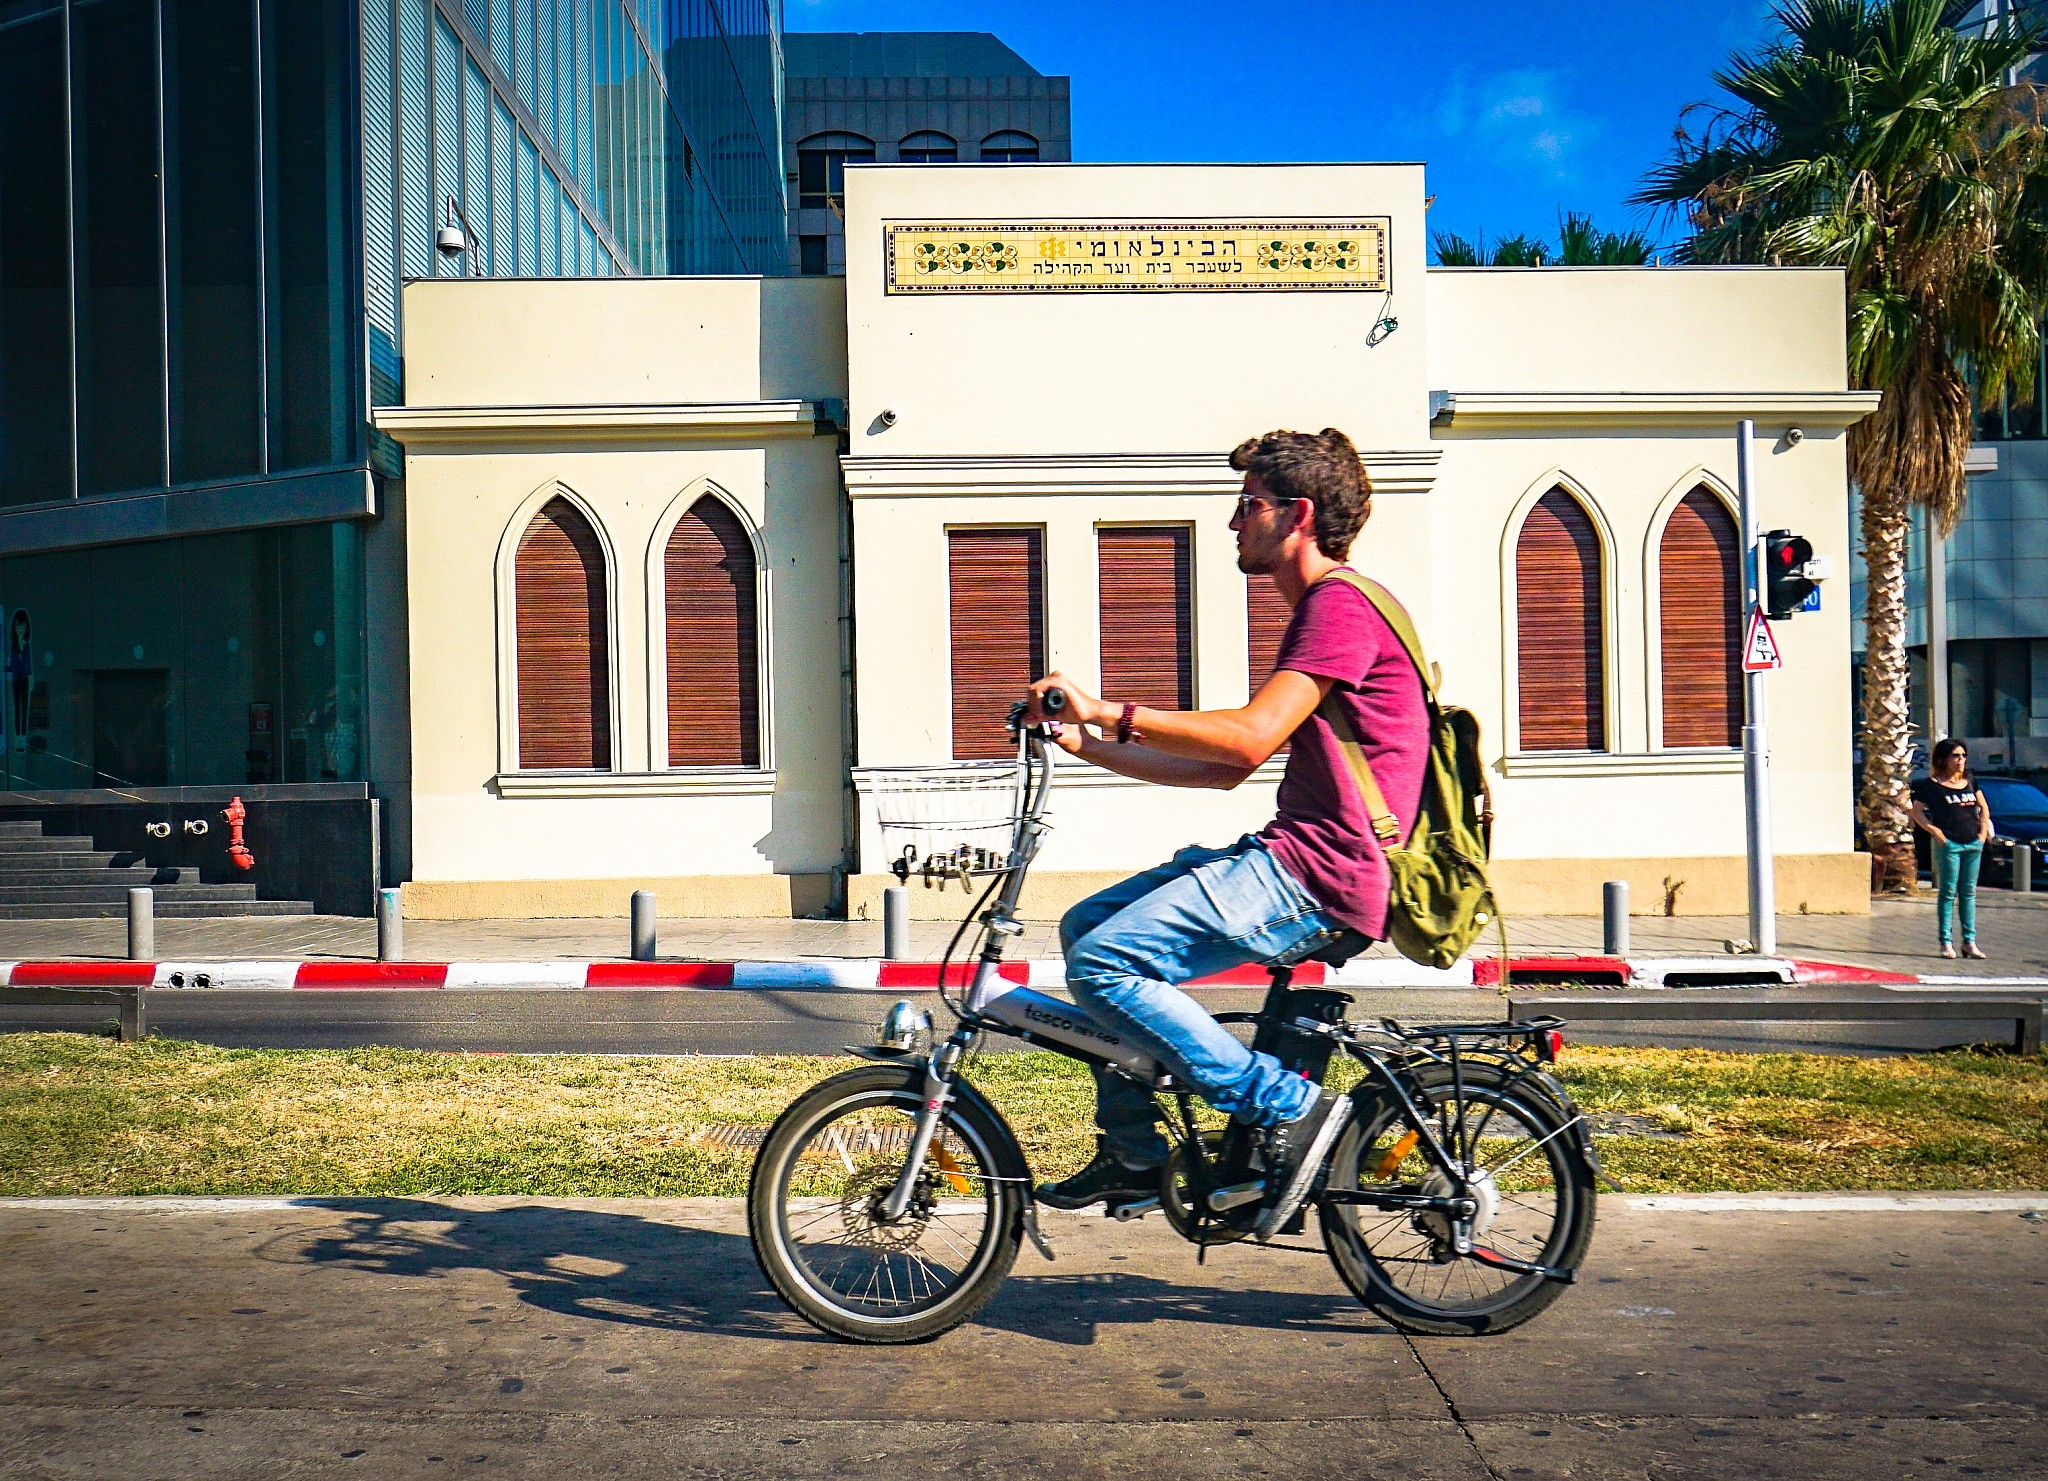 New driver's license instituted for electric bicycles | The Times of